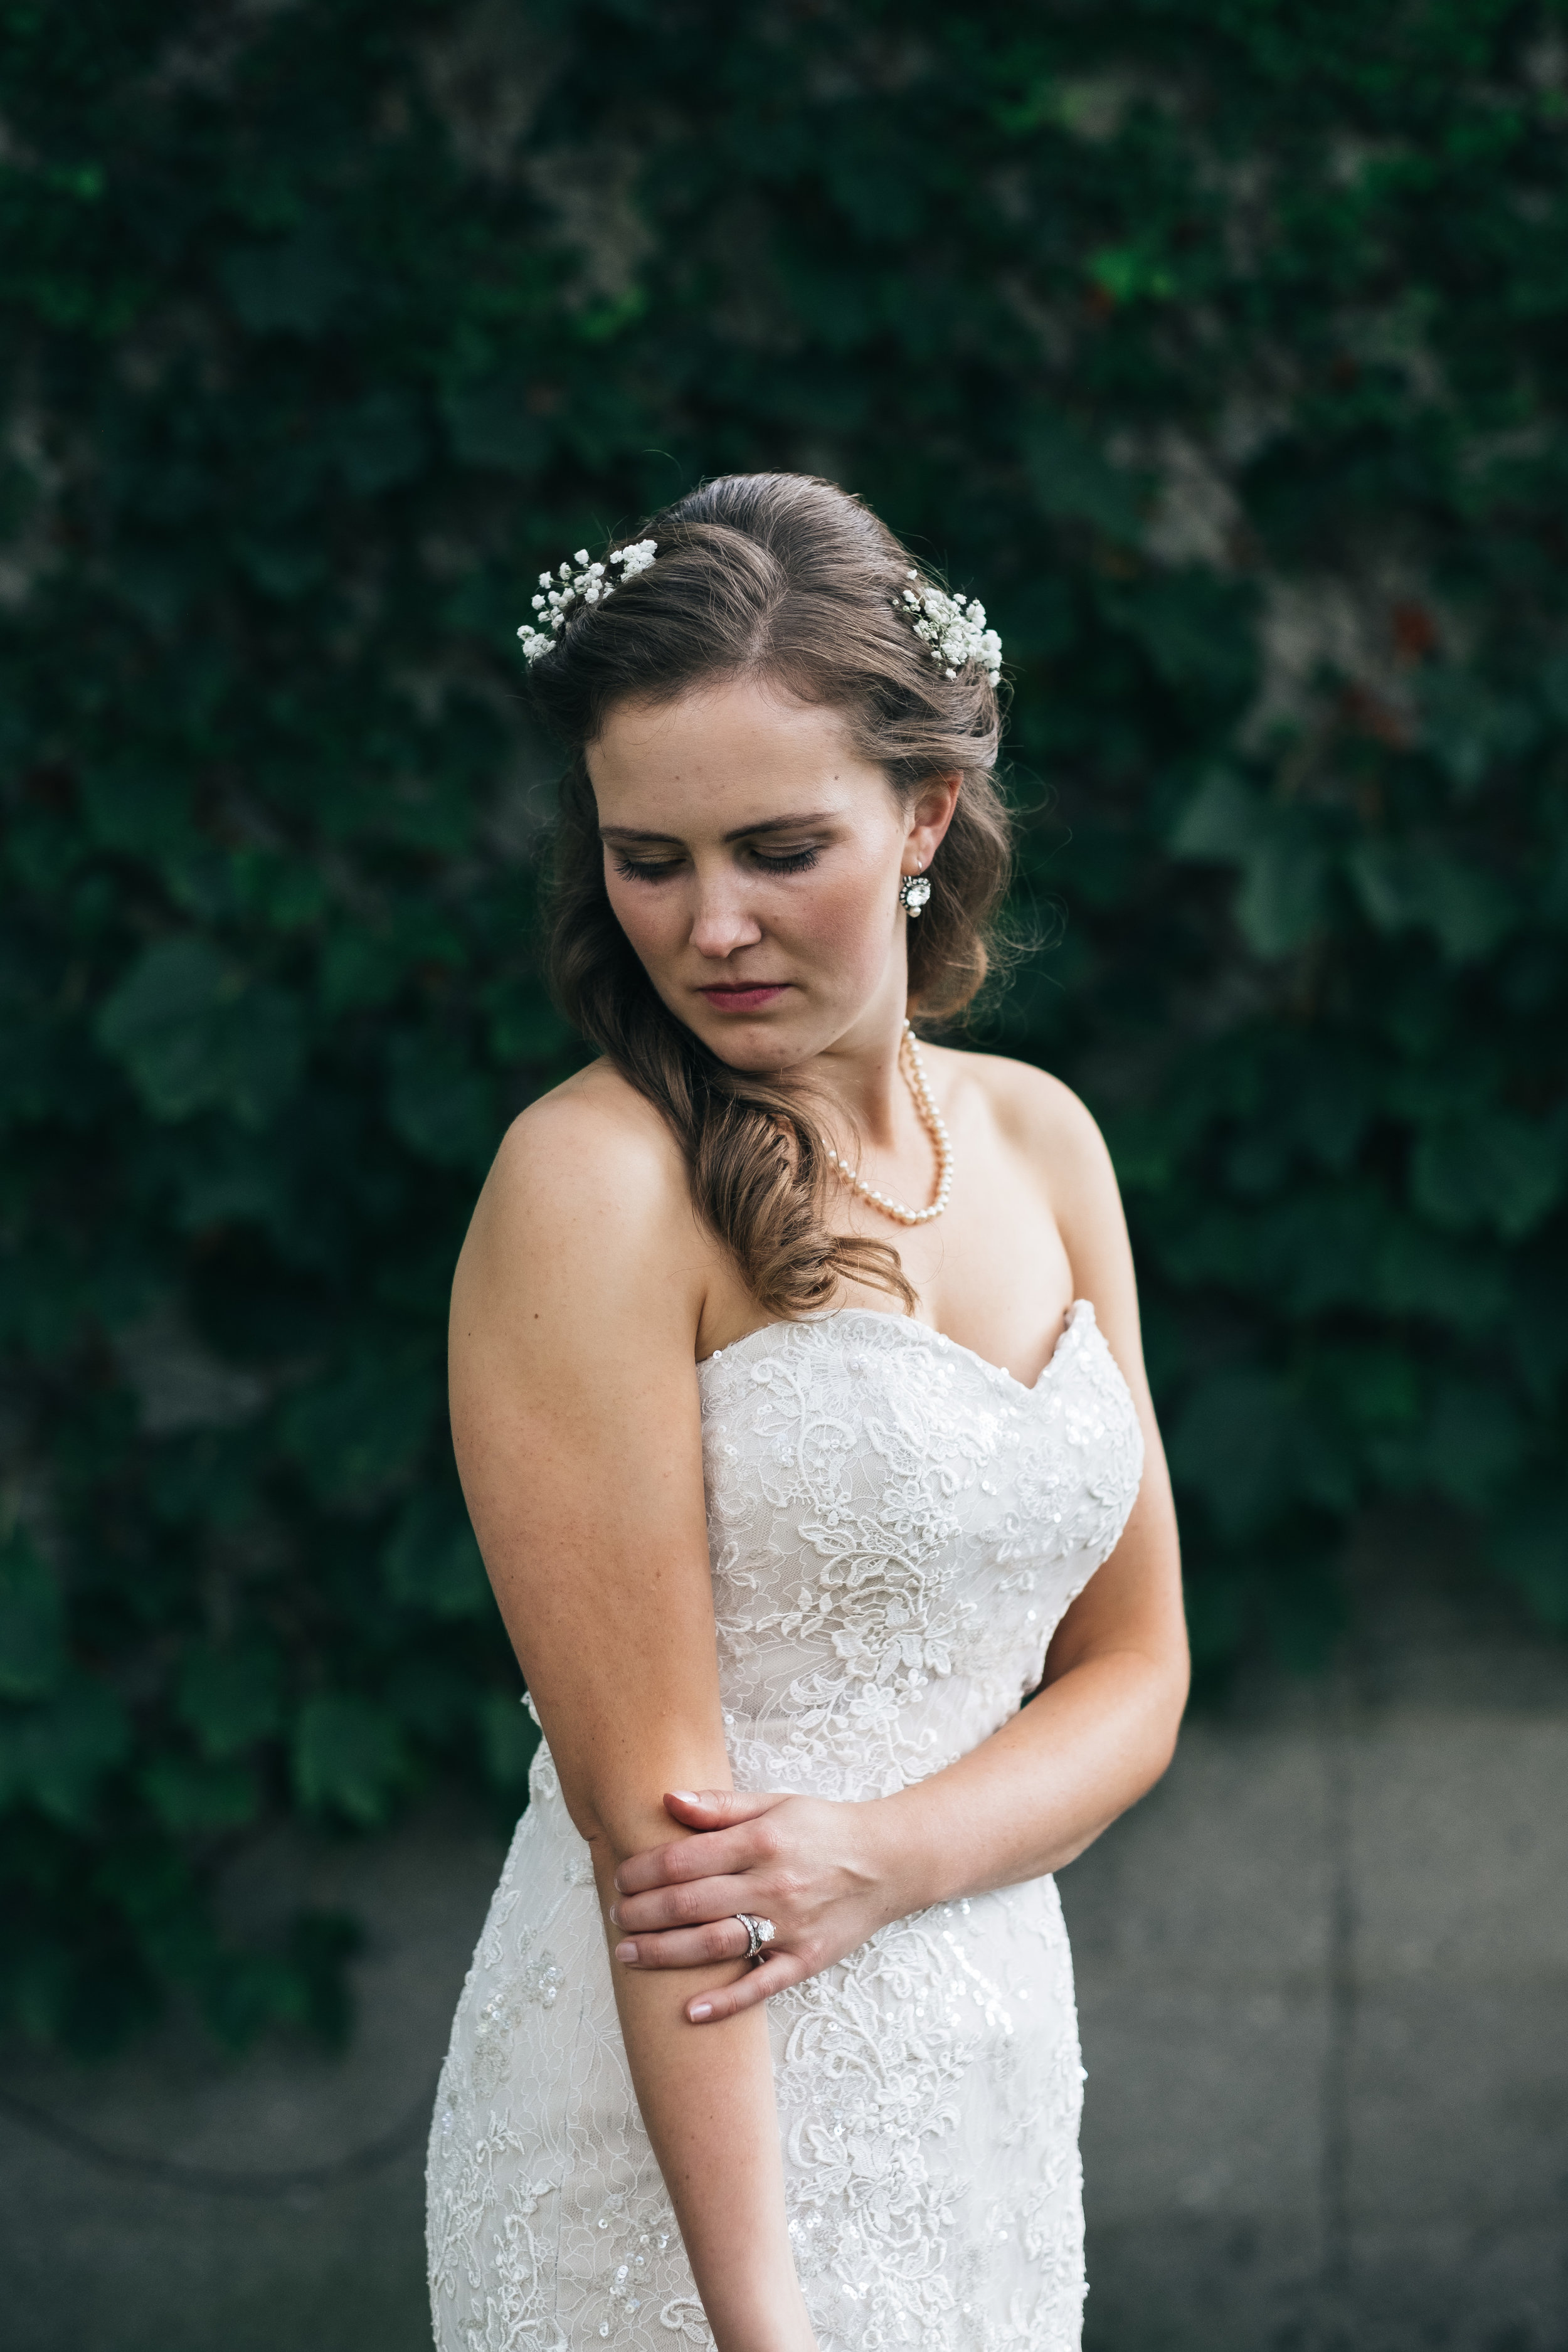 Wedding photography of bride in lace wedding dress.